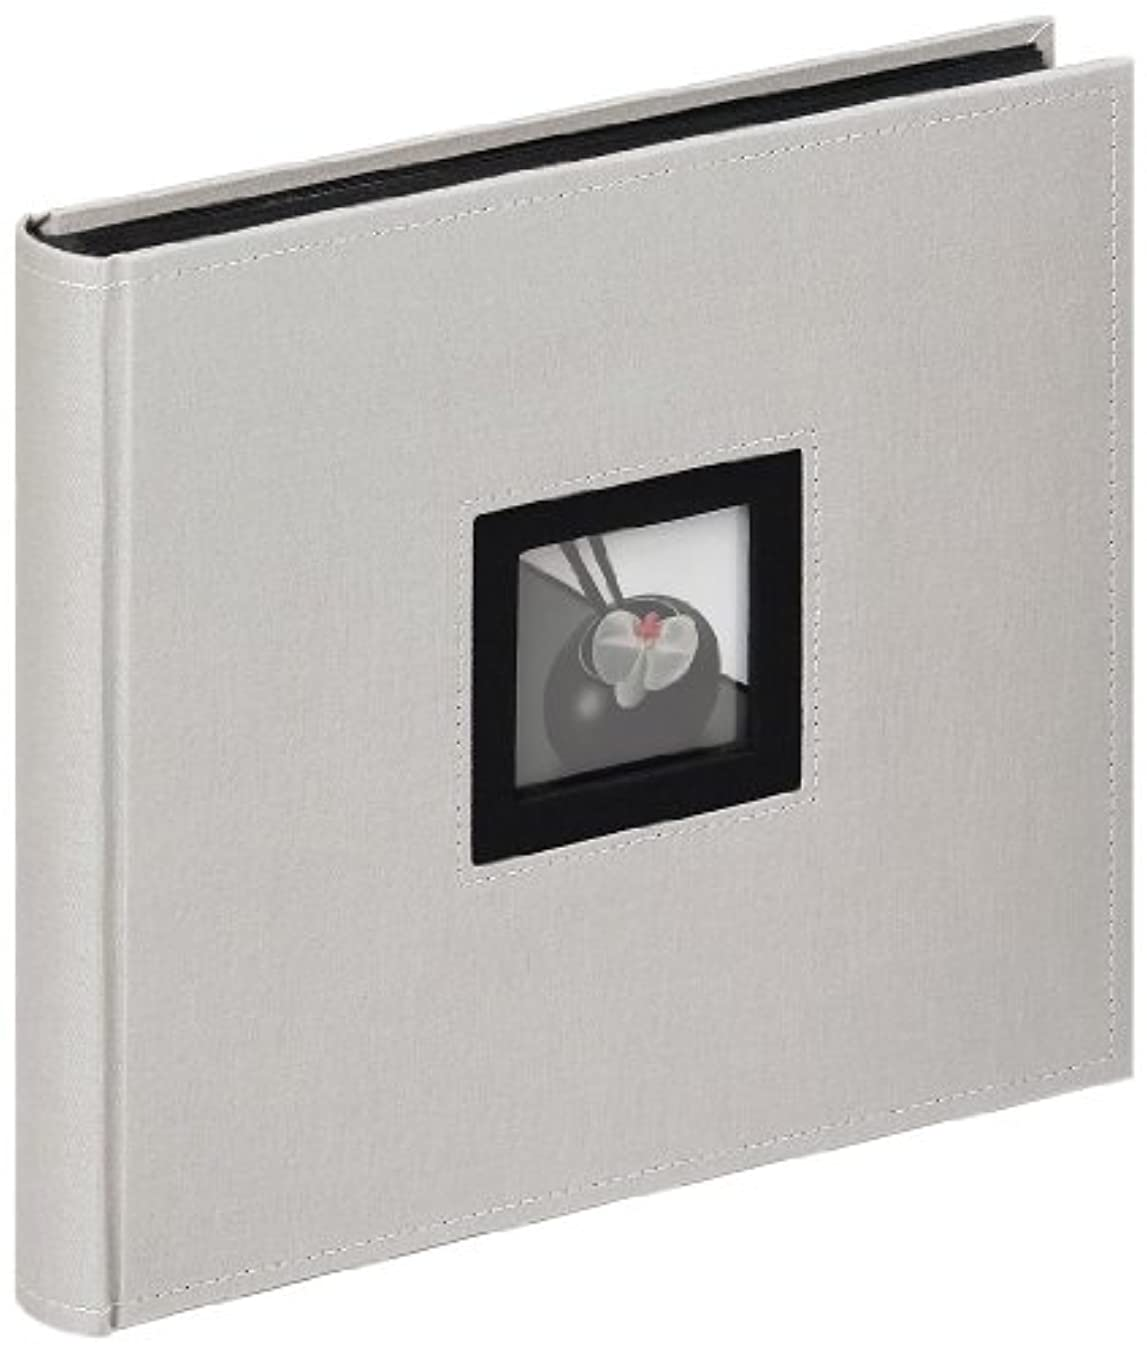 Walther Design FA-209-D Black & White Linen Cover, Book Bound Album with die Cut for Your Personal Picture, 10.2 x 10.2 inch (26 x 26 cm), 50 Black Pages, Grey